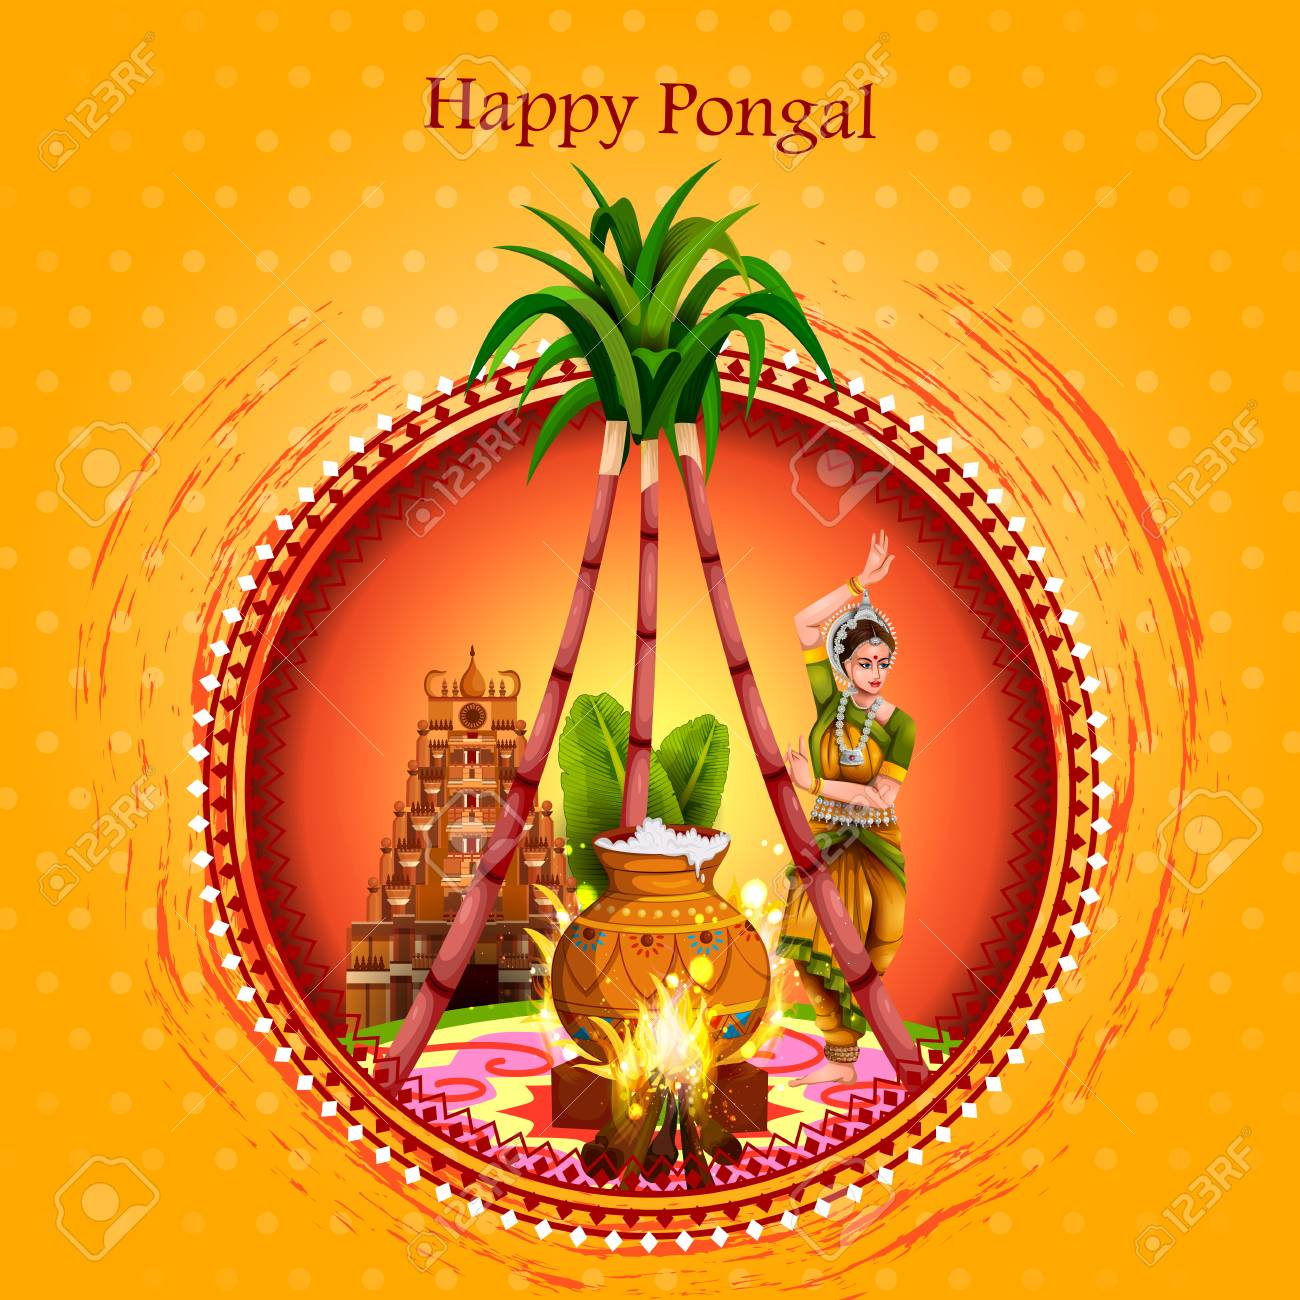 Happy Pongal Festival Of Tamil Nadu India Background Royalty 1300x1300